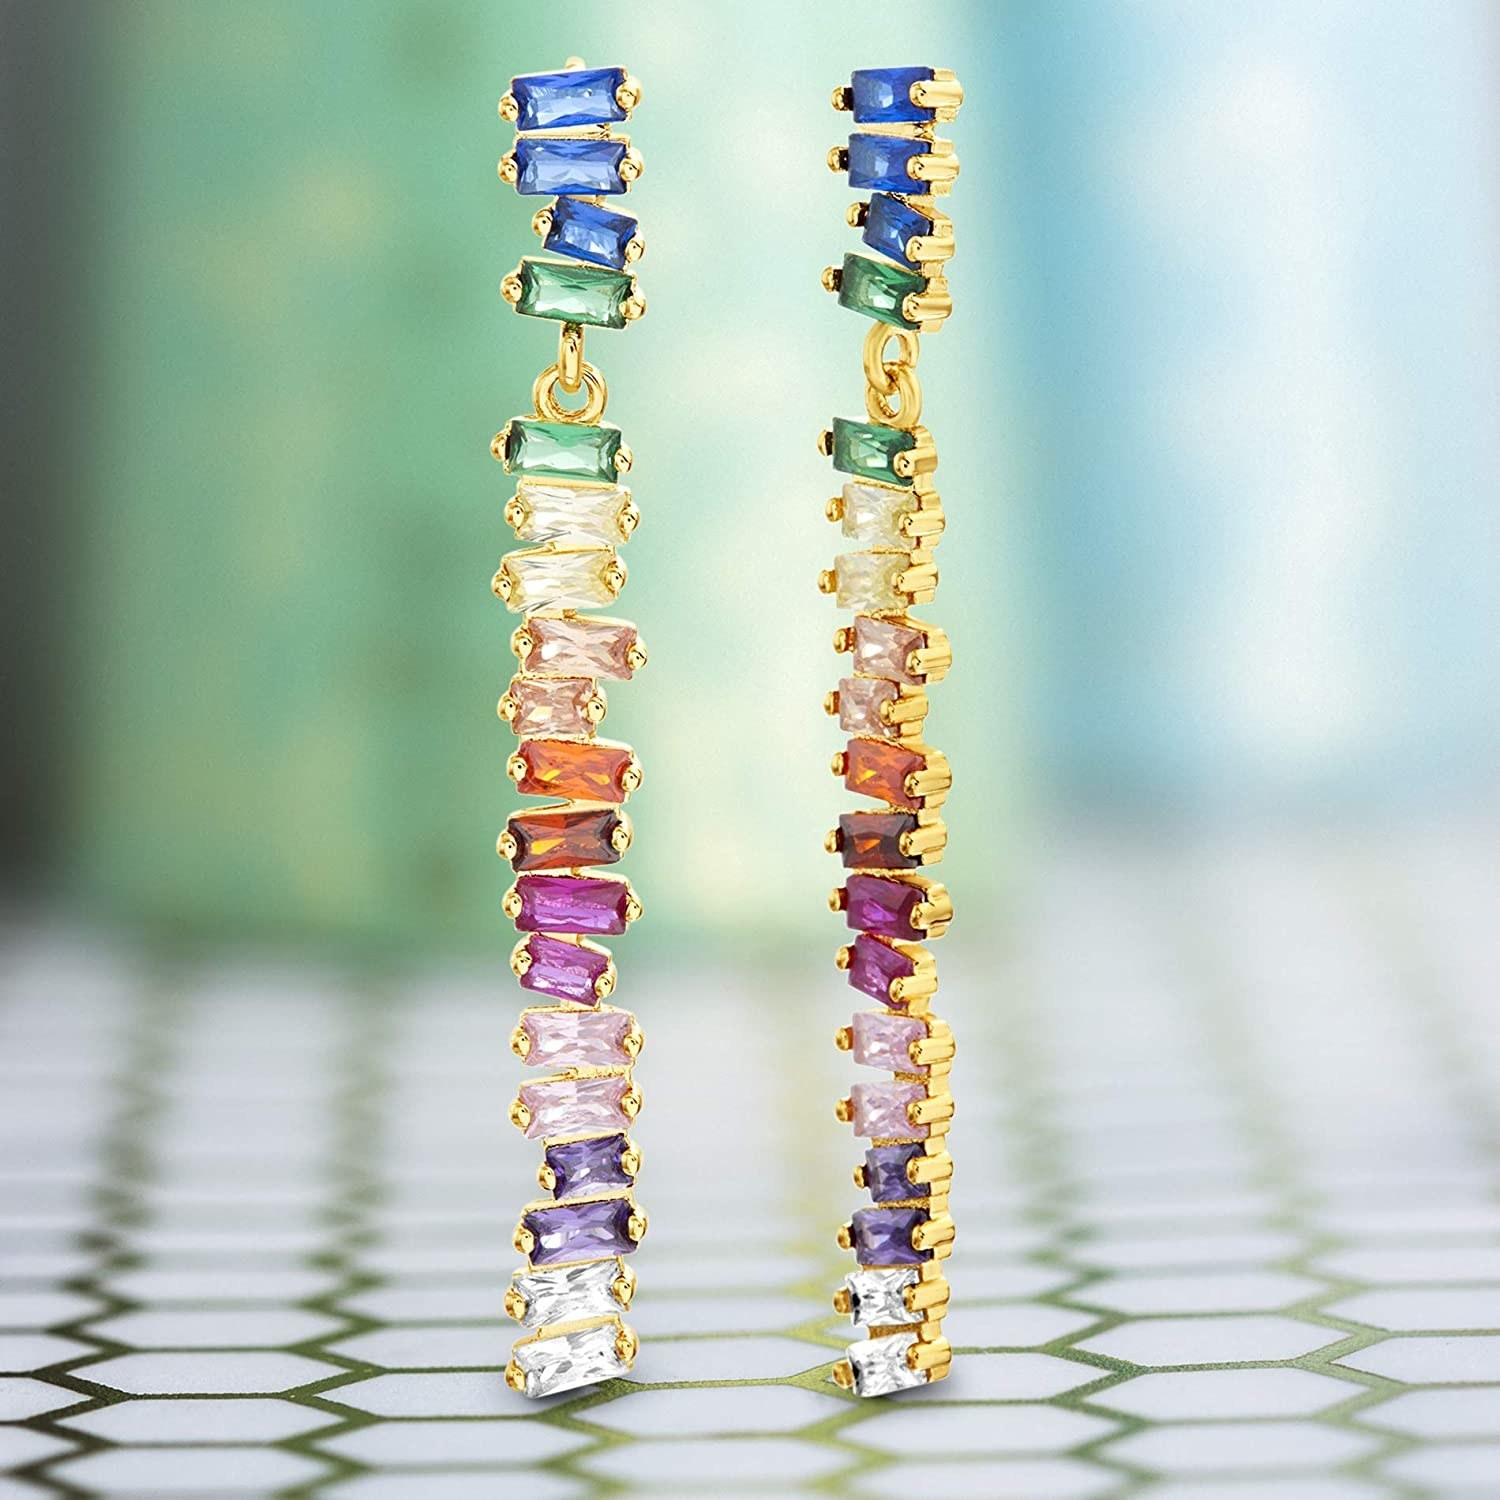 the earrings, which are a long-skinny stacks of two stones per color all stacked on top of one another with gold trim